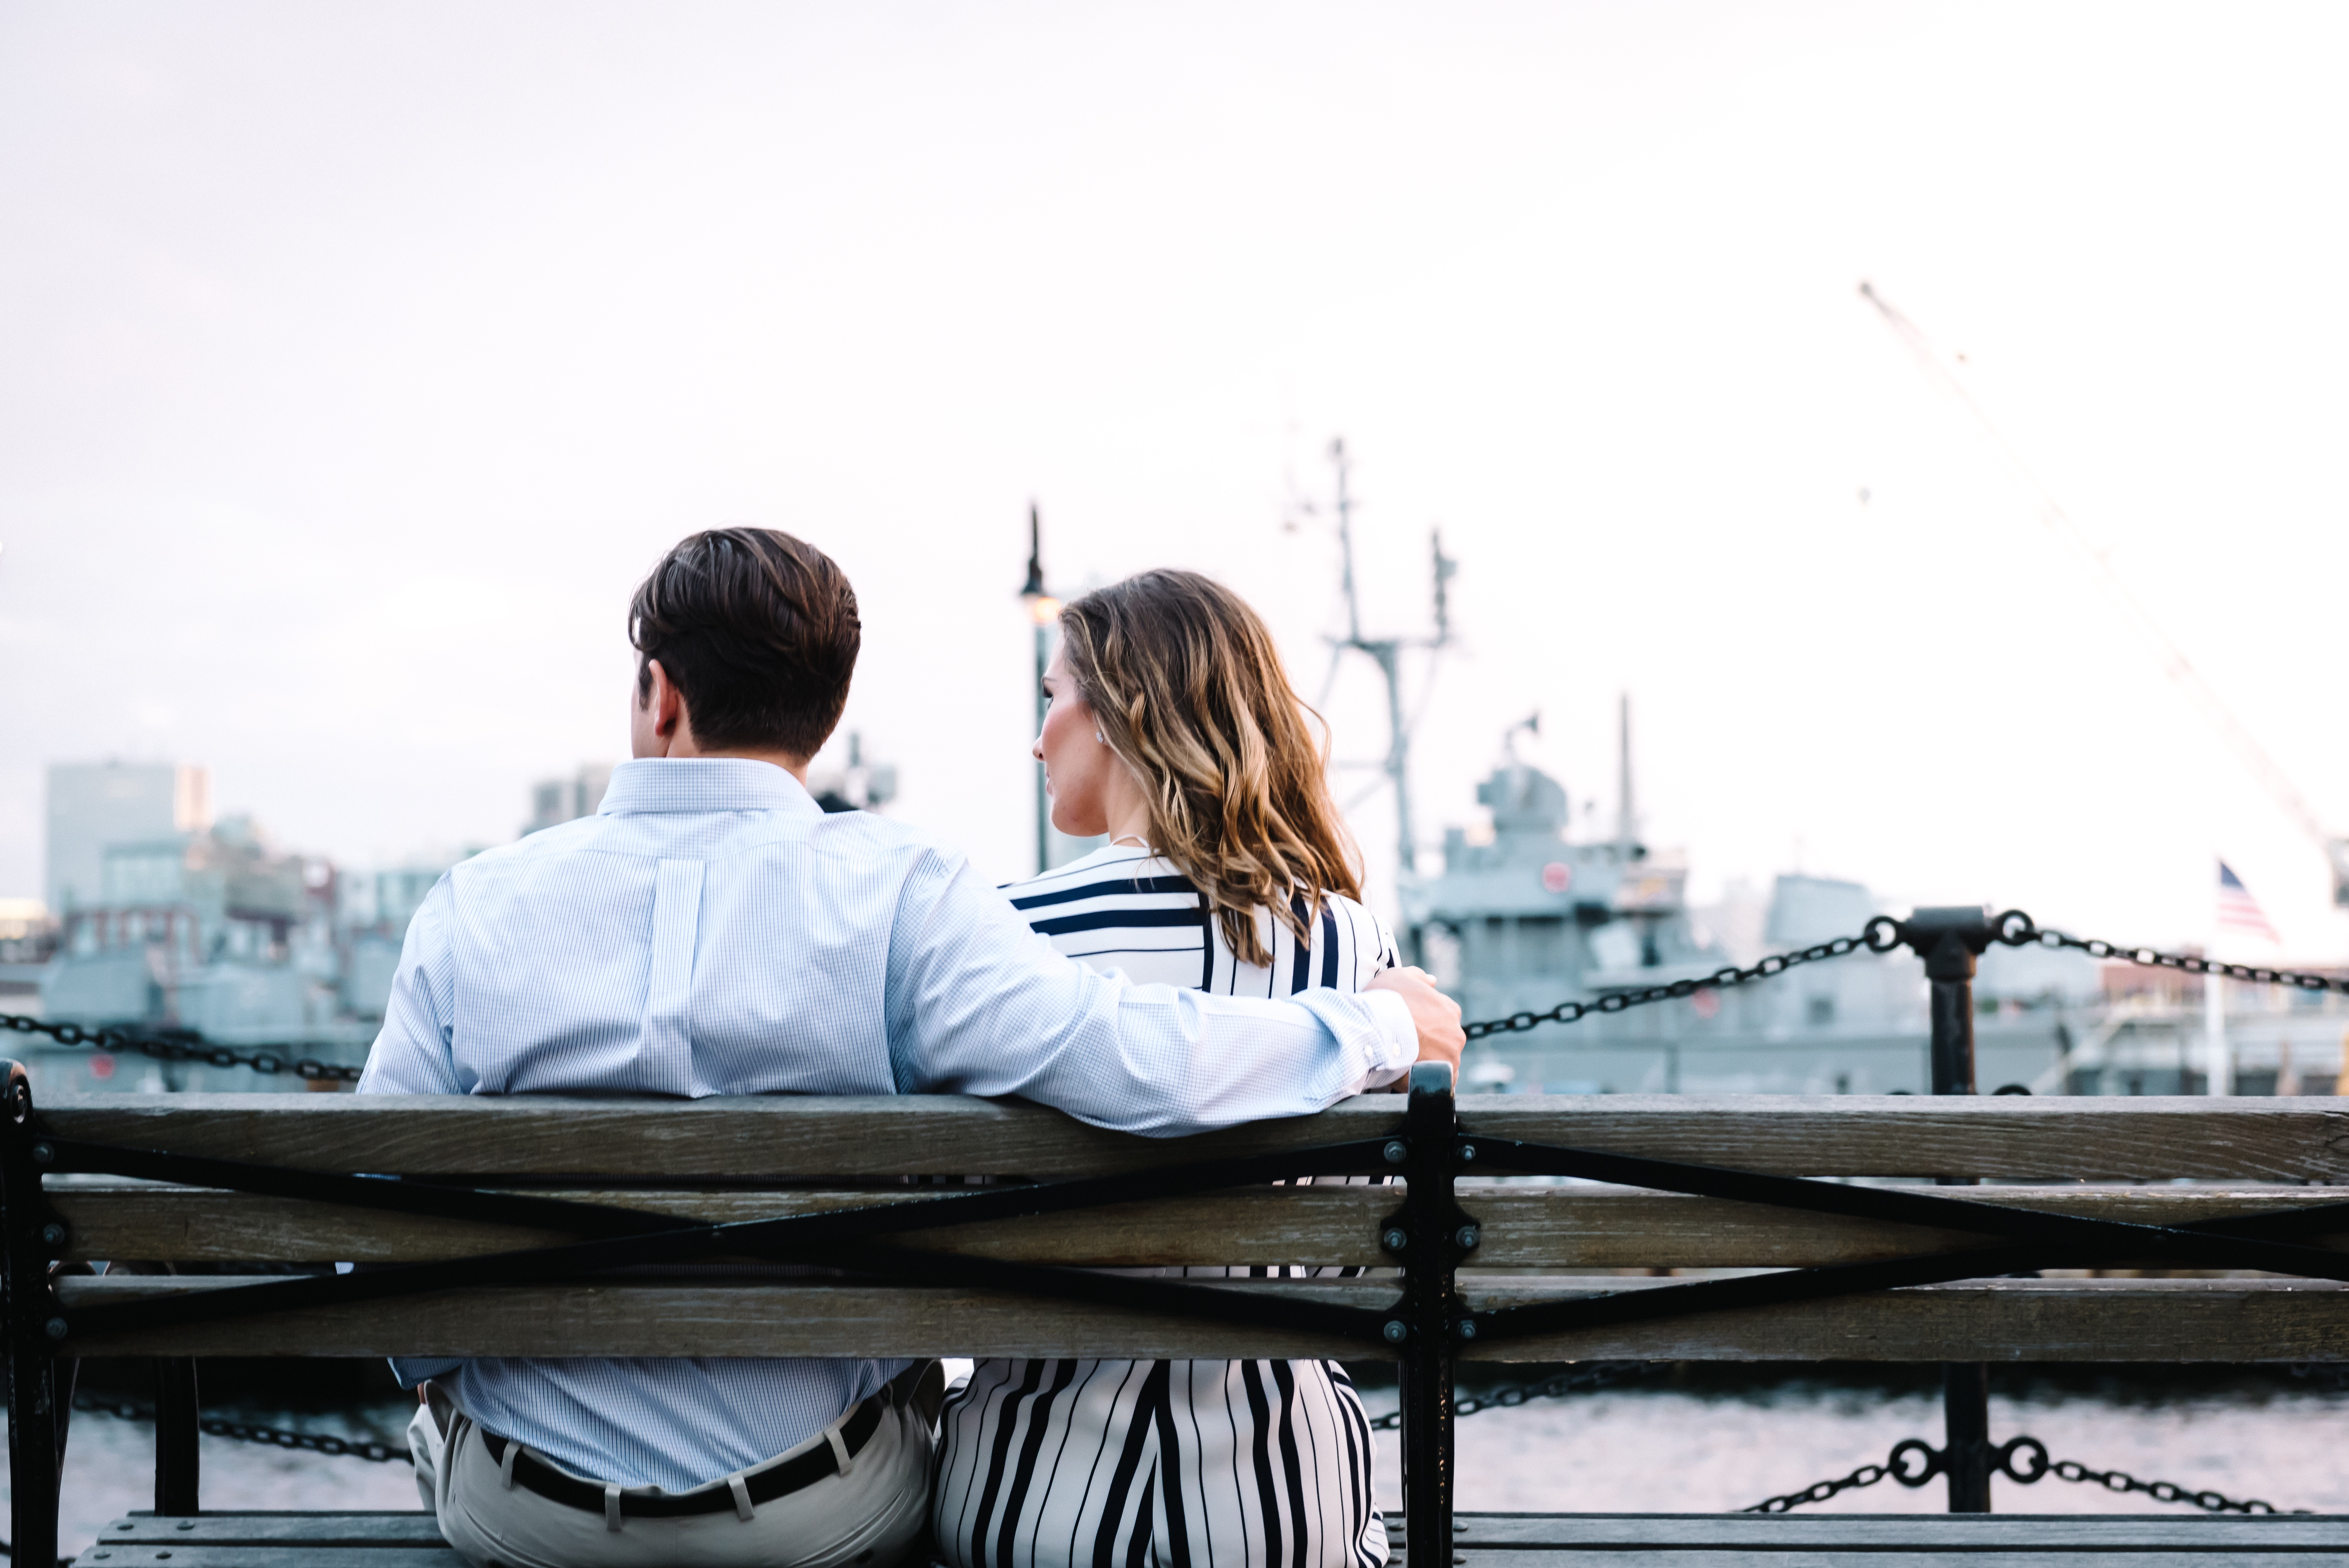 Two people sat by a harbour on a bench